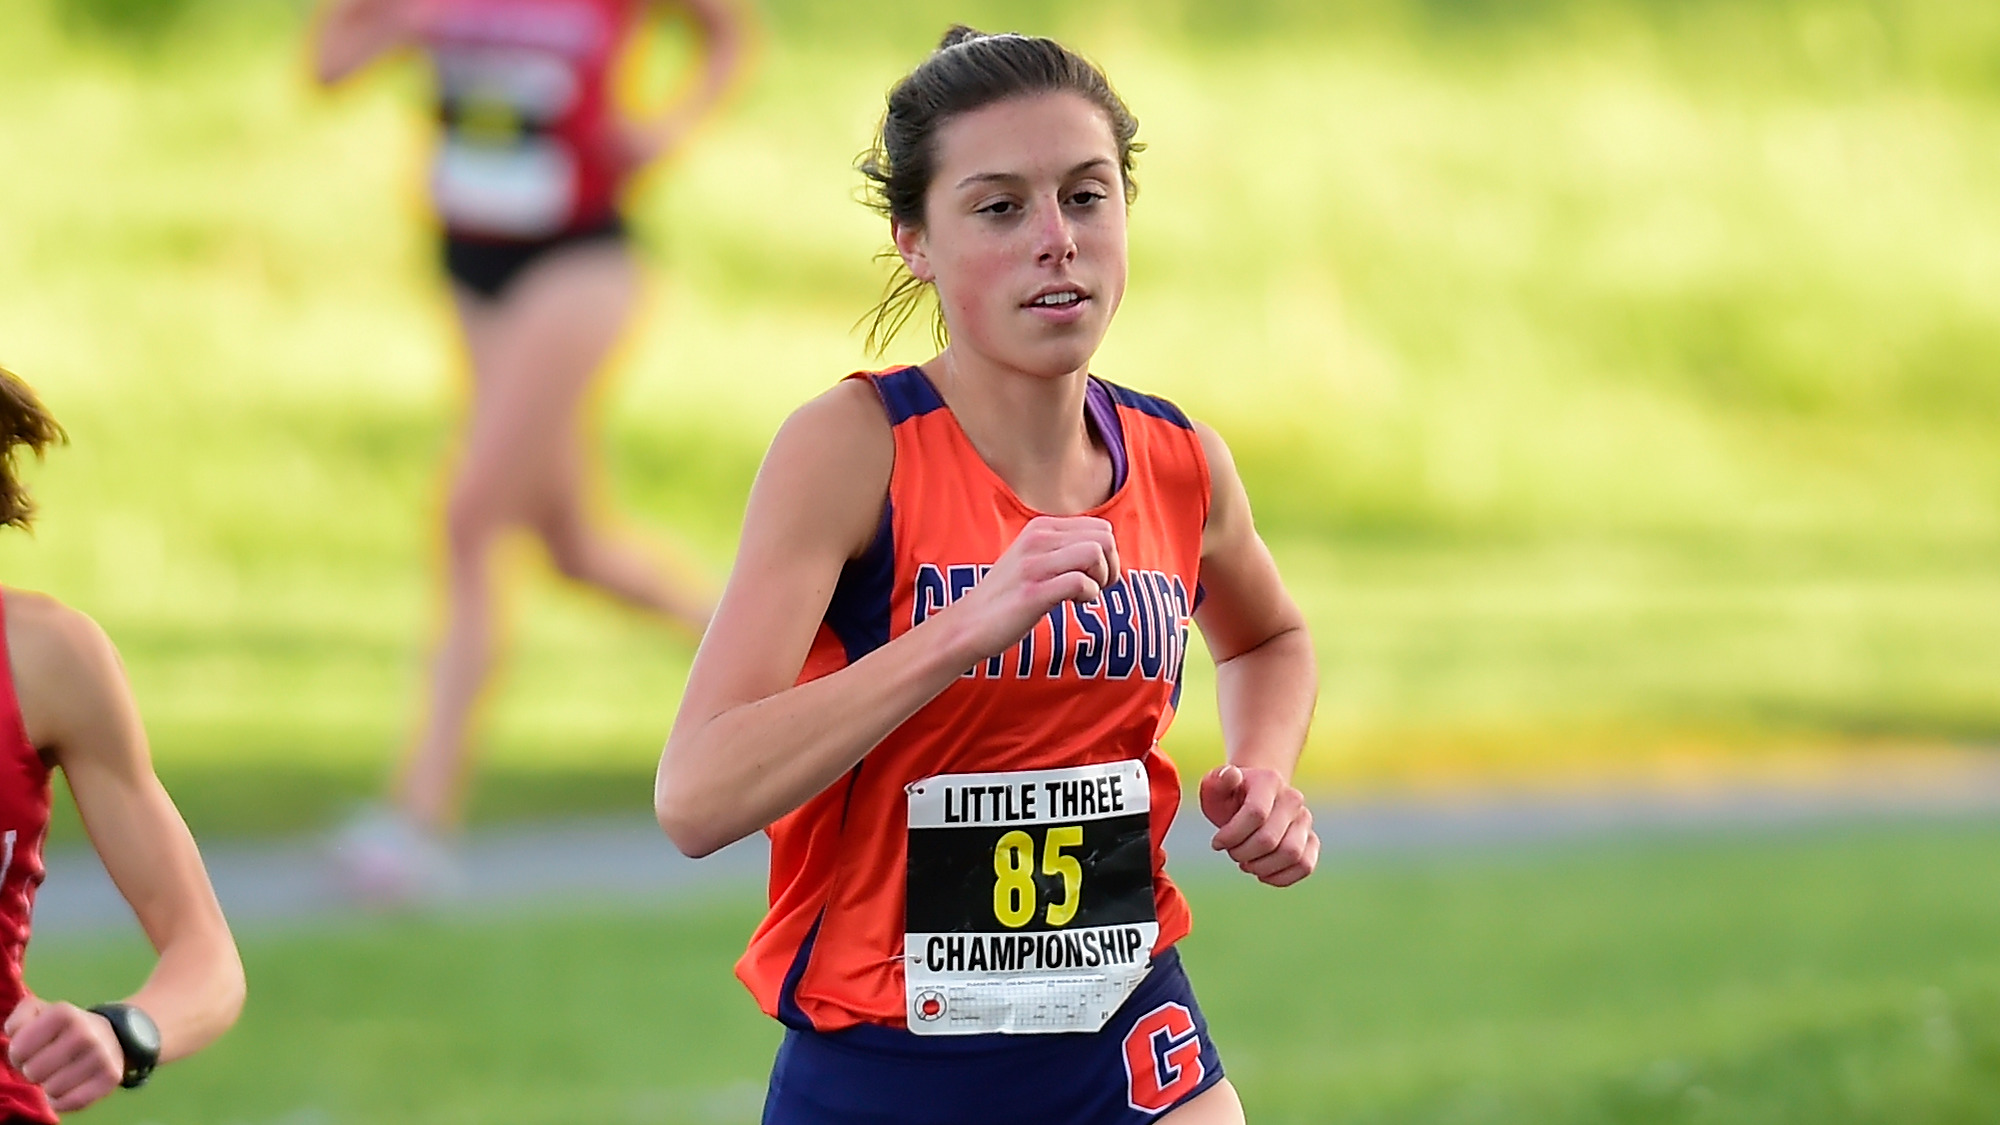 Captain (and co-sports editor for The Gettysburgian) Elizabeth Hilfrank won first place at the Delaware Valley Invitational this weekend (Photo courtesy of Gettysburg College Athletics)